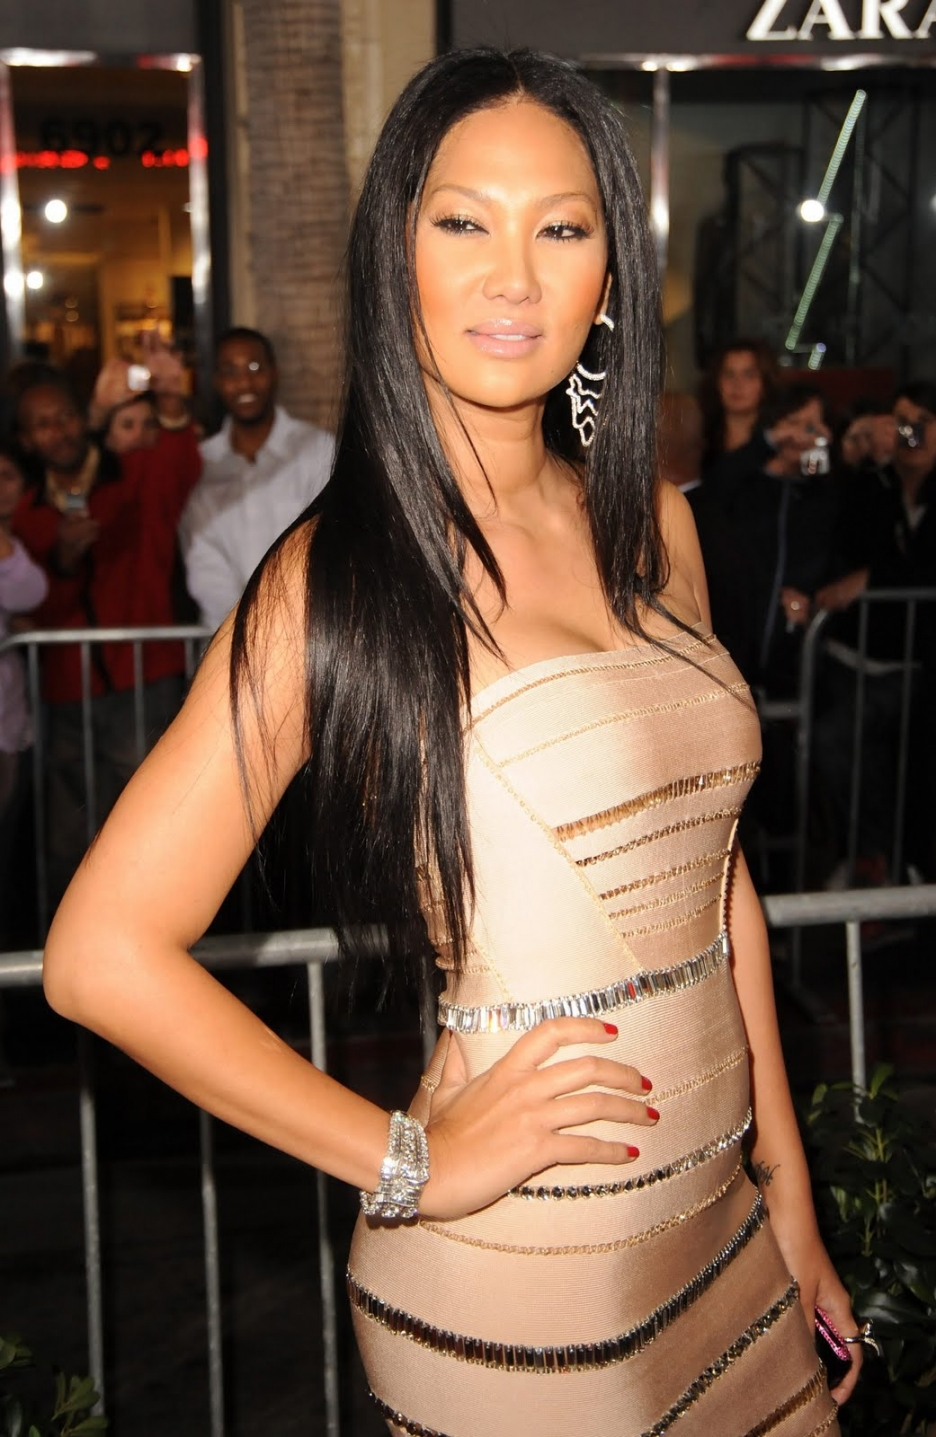 Kimora Lee Simmons - Wikipedia